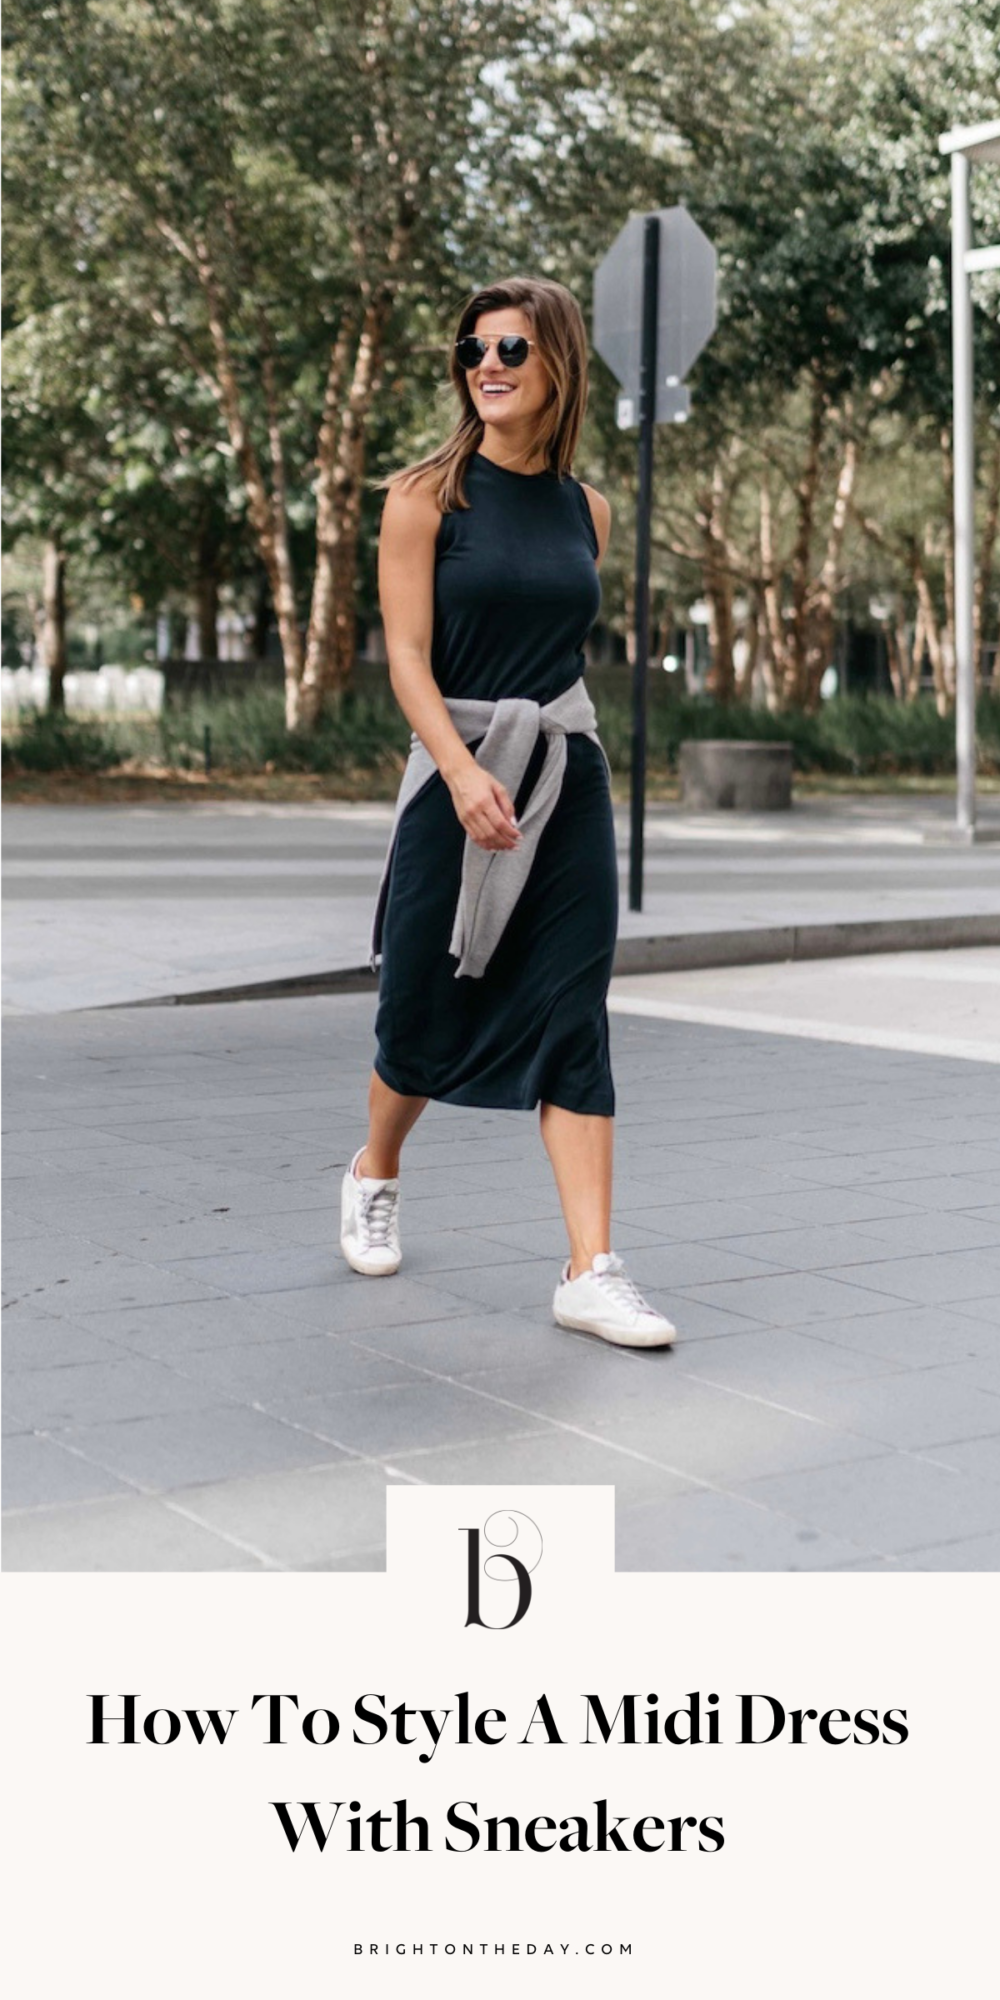 Casual Dress With Tennis Shoes And Top Wrapped Around Waist Google Search Dress With Sneakers Midi Dress With Sneakers Midi Dress Casual [ 2000 x 1000 Pixel ]